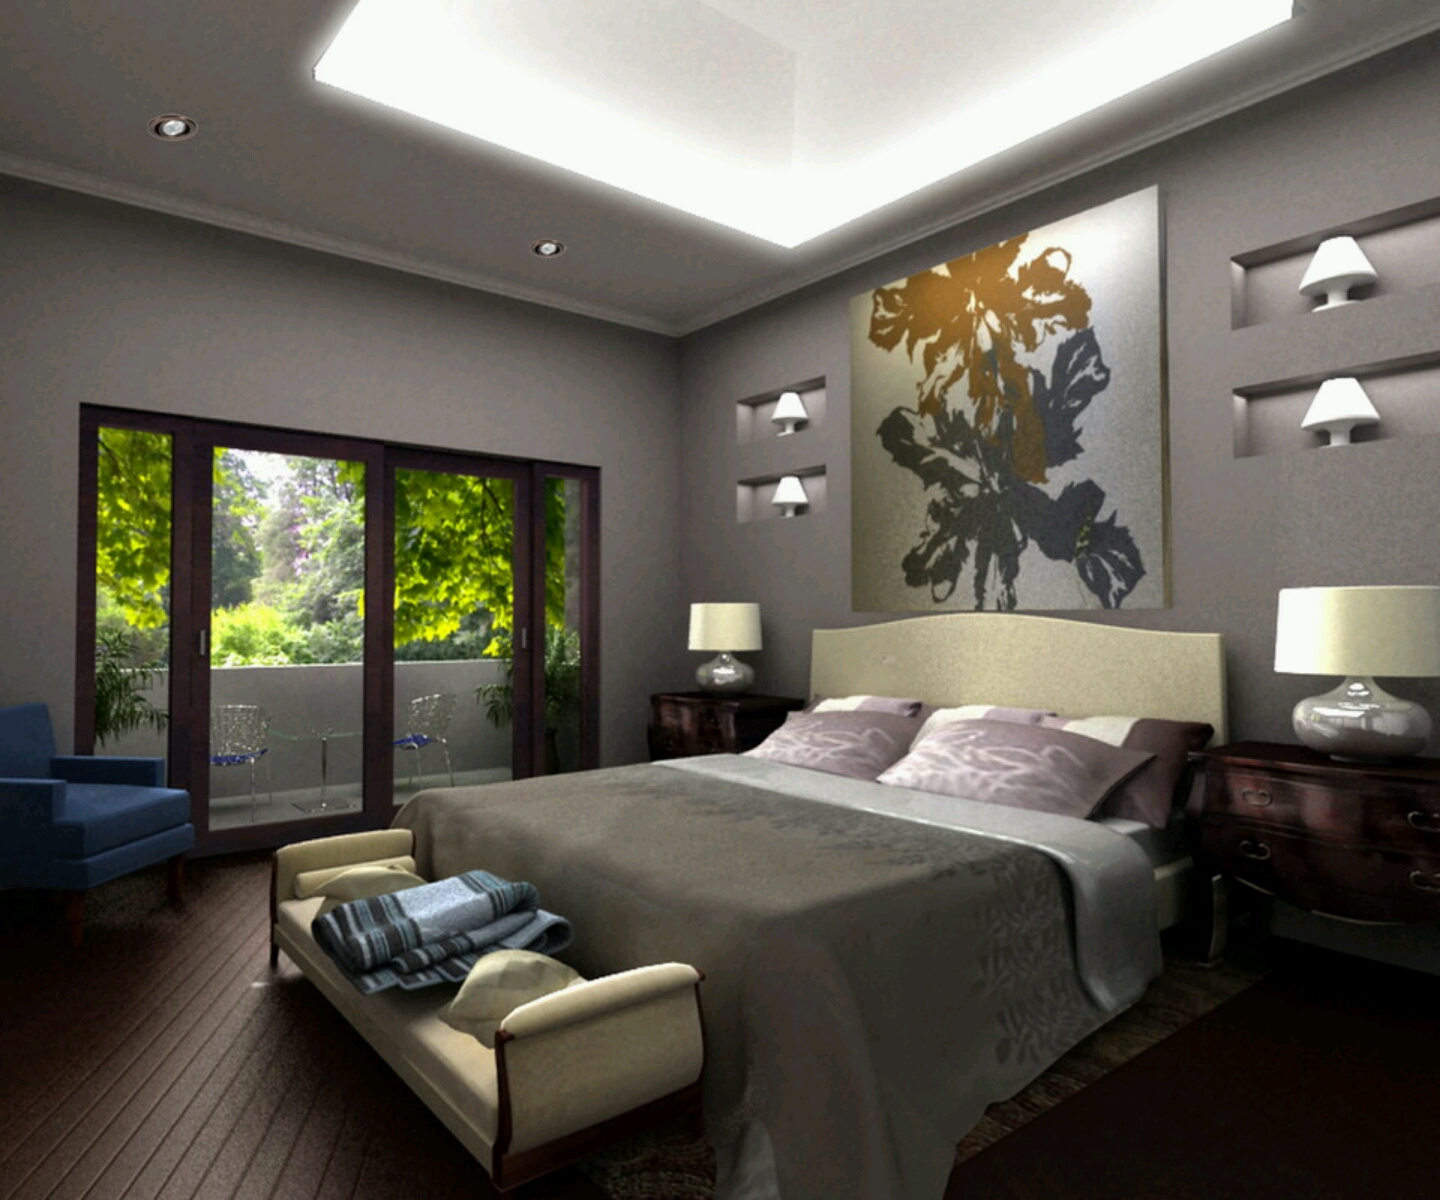 Modern bed designs beautiful bedrooms designs ideas for Interior designs for bedrooms ideas